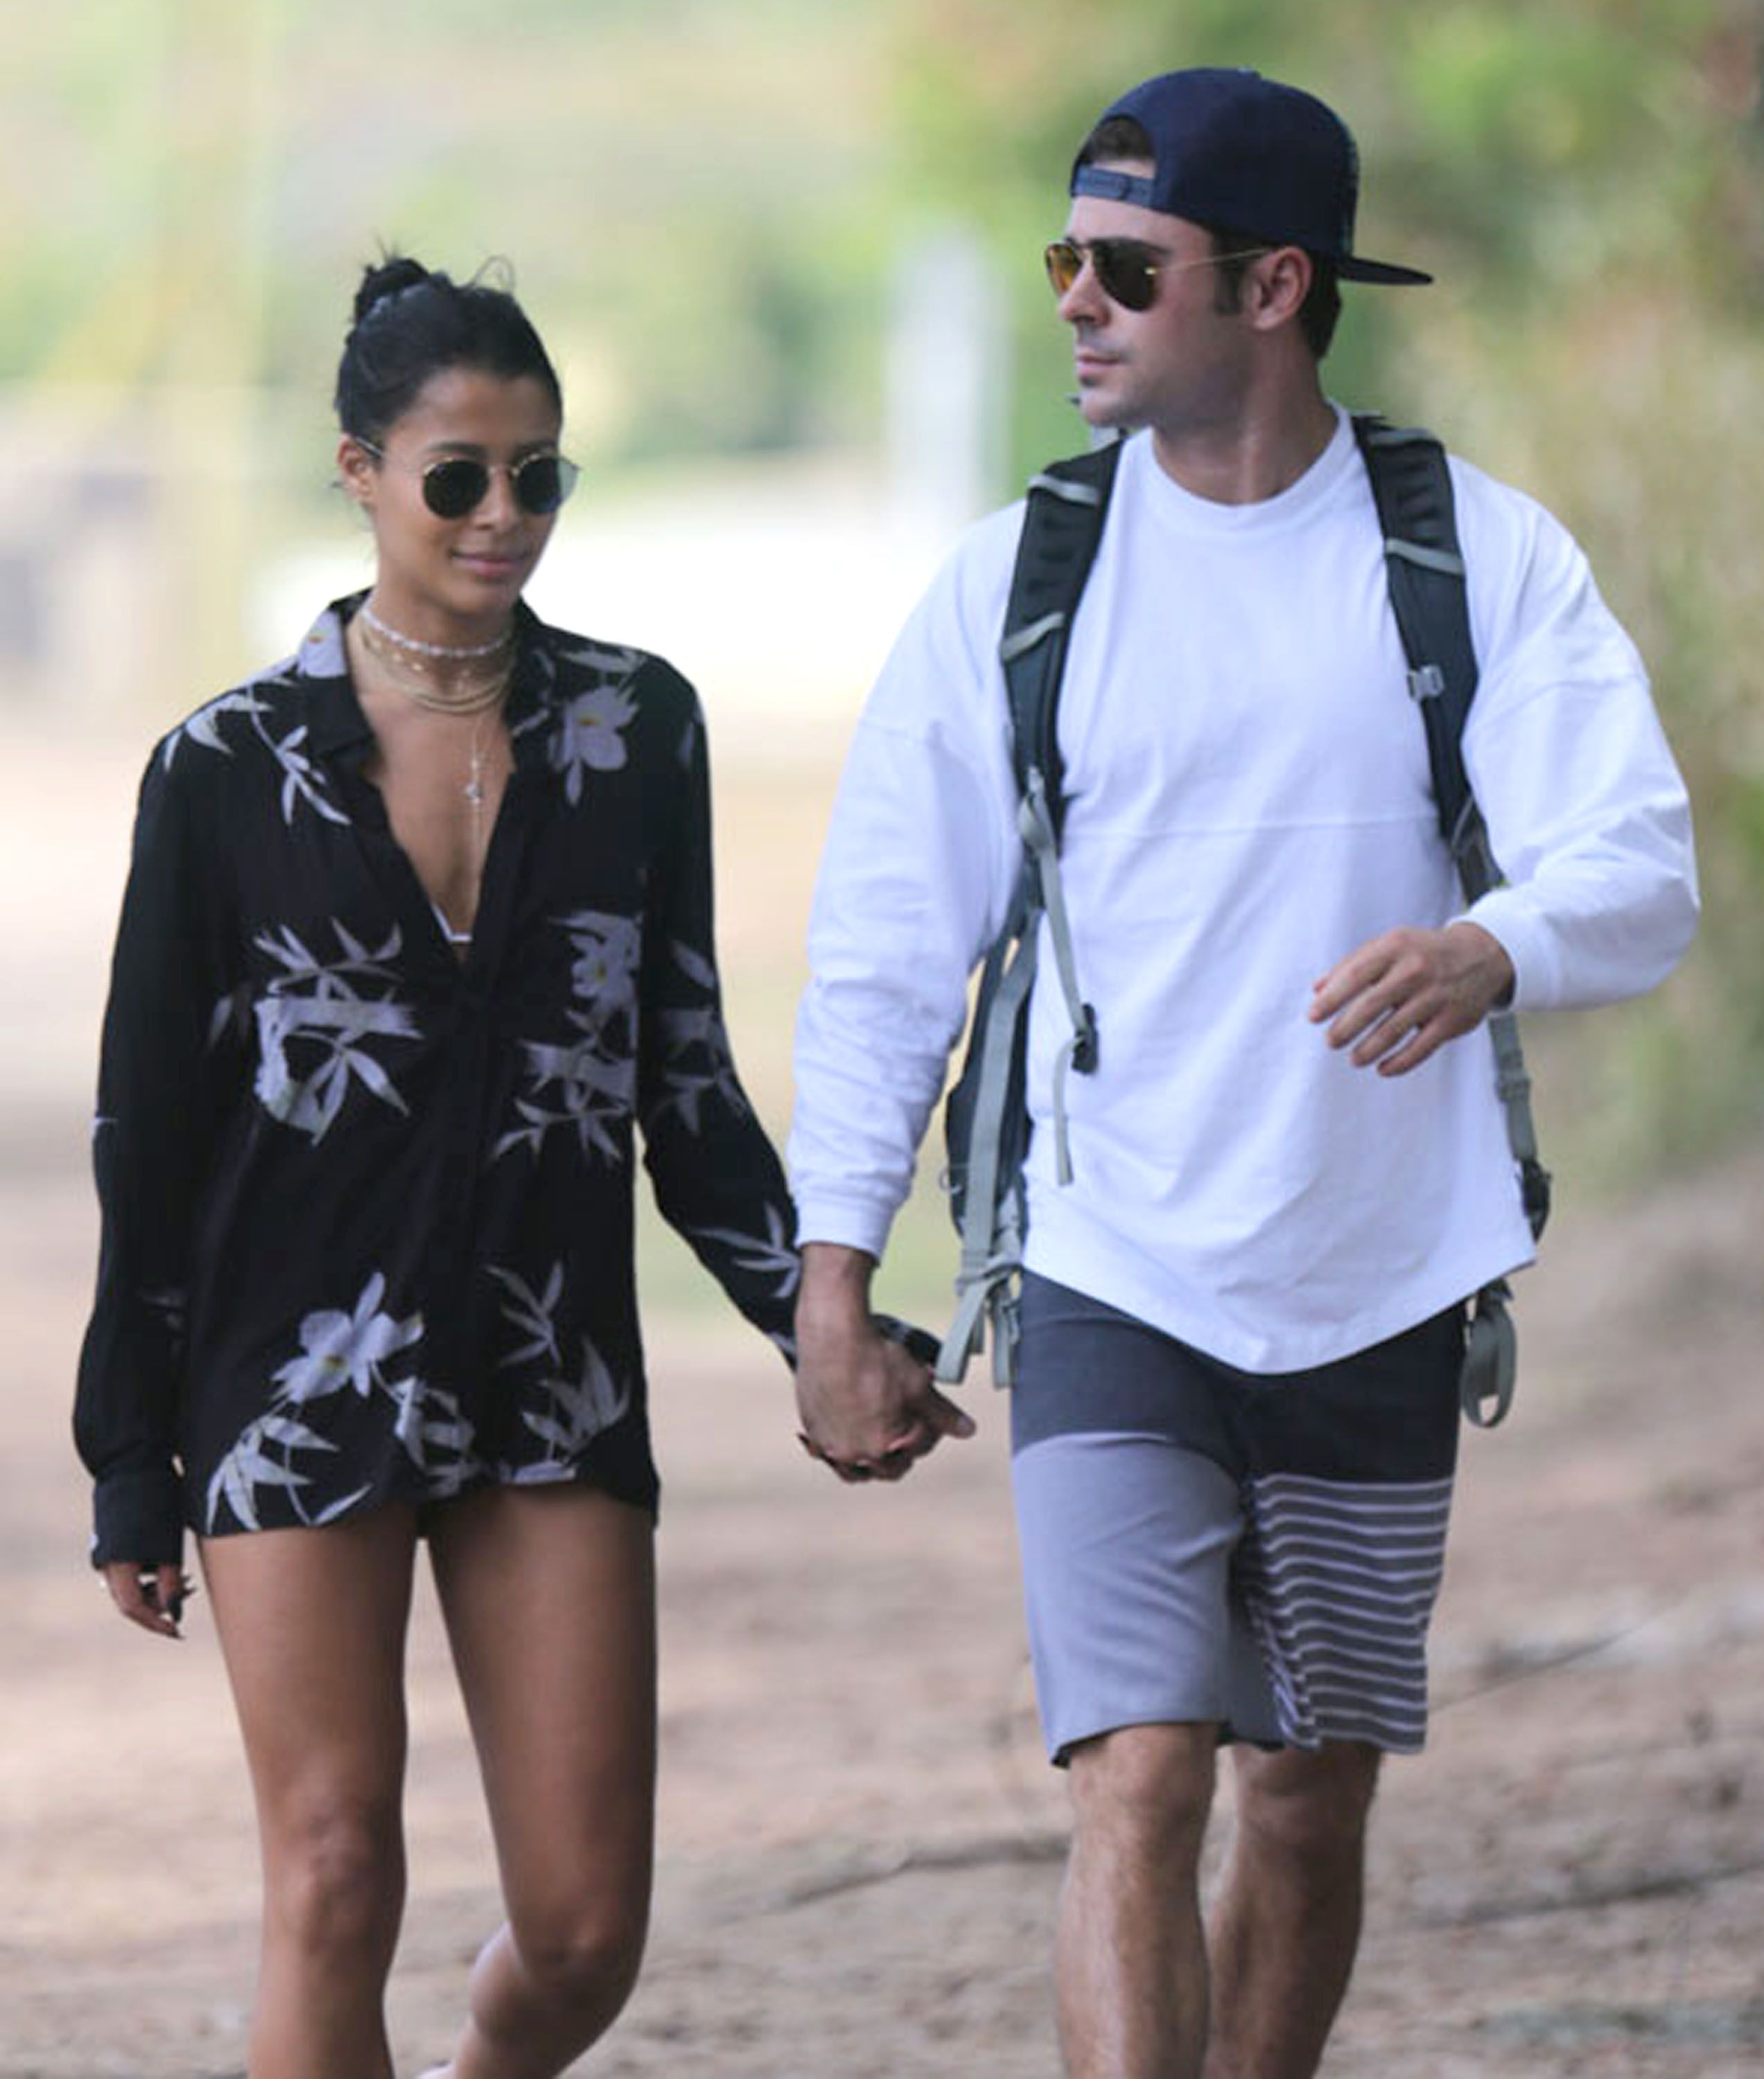 Zac Efron Treats His Girlfriend to a Supersweet Weekend